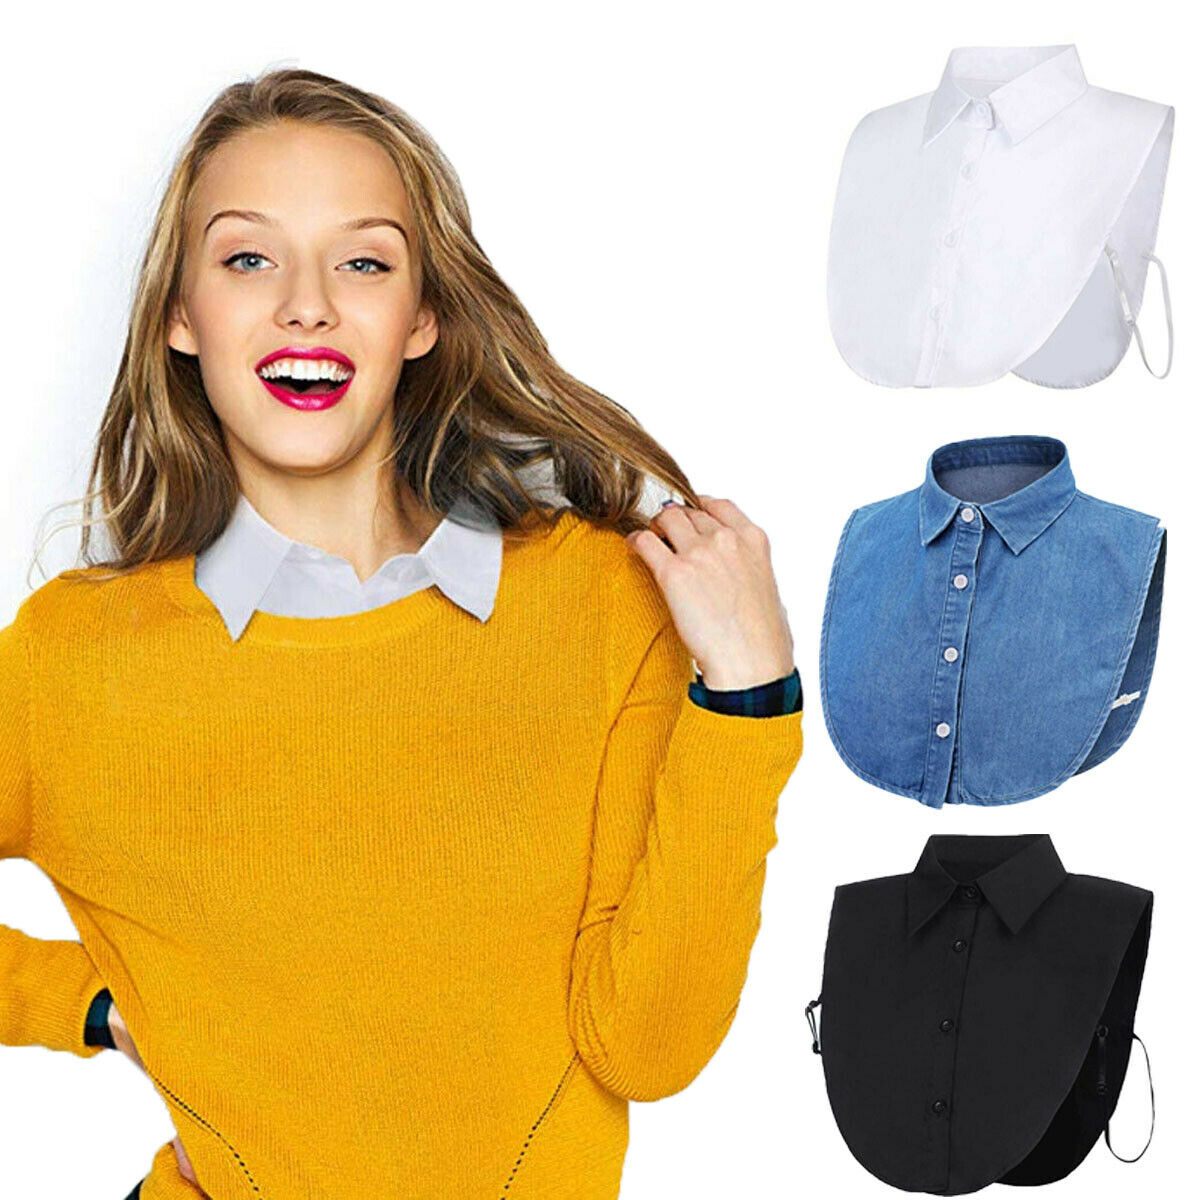 Women Ladies Fake False Lapel Half Shirt Style Blouse Detachable Removable Collar Unisex Men Women Accessories Neck Decor Polyes